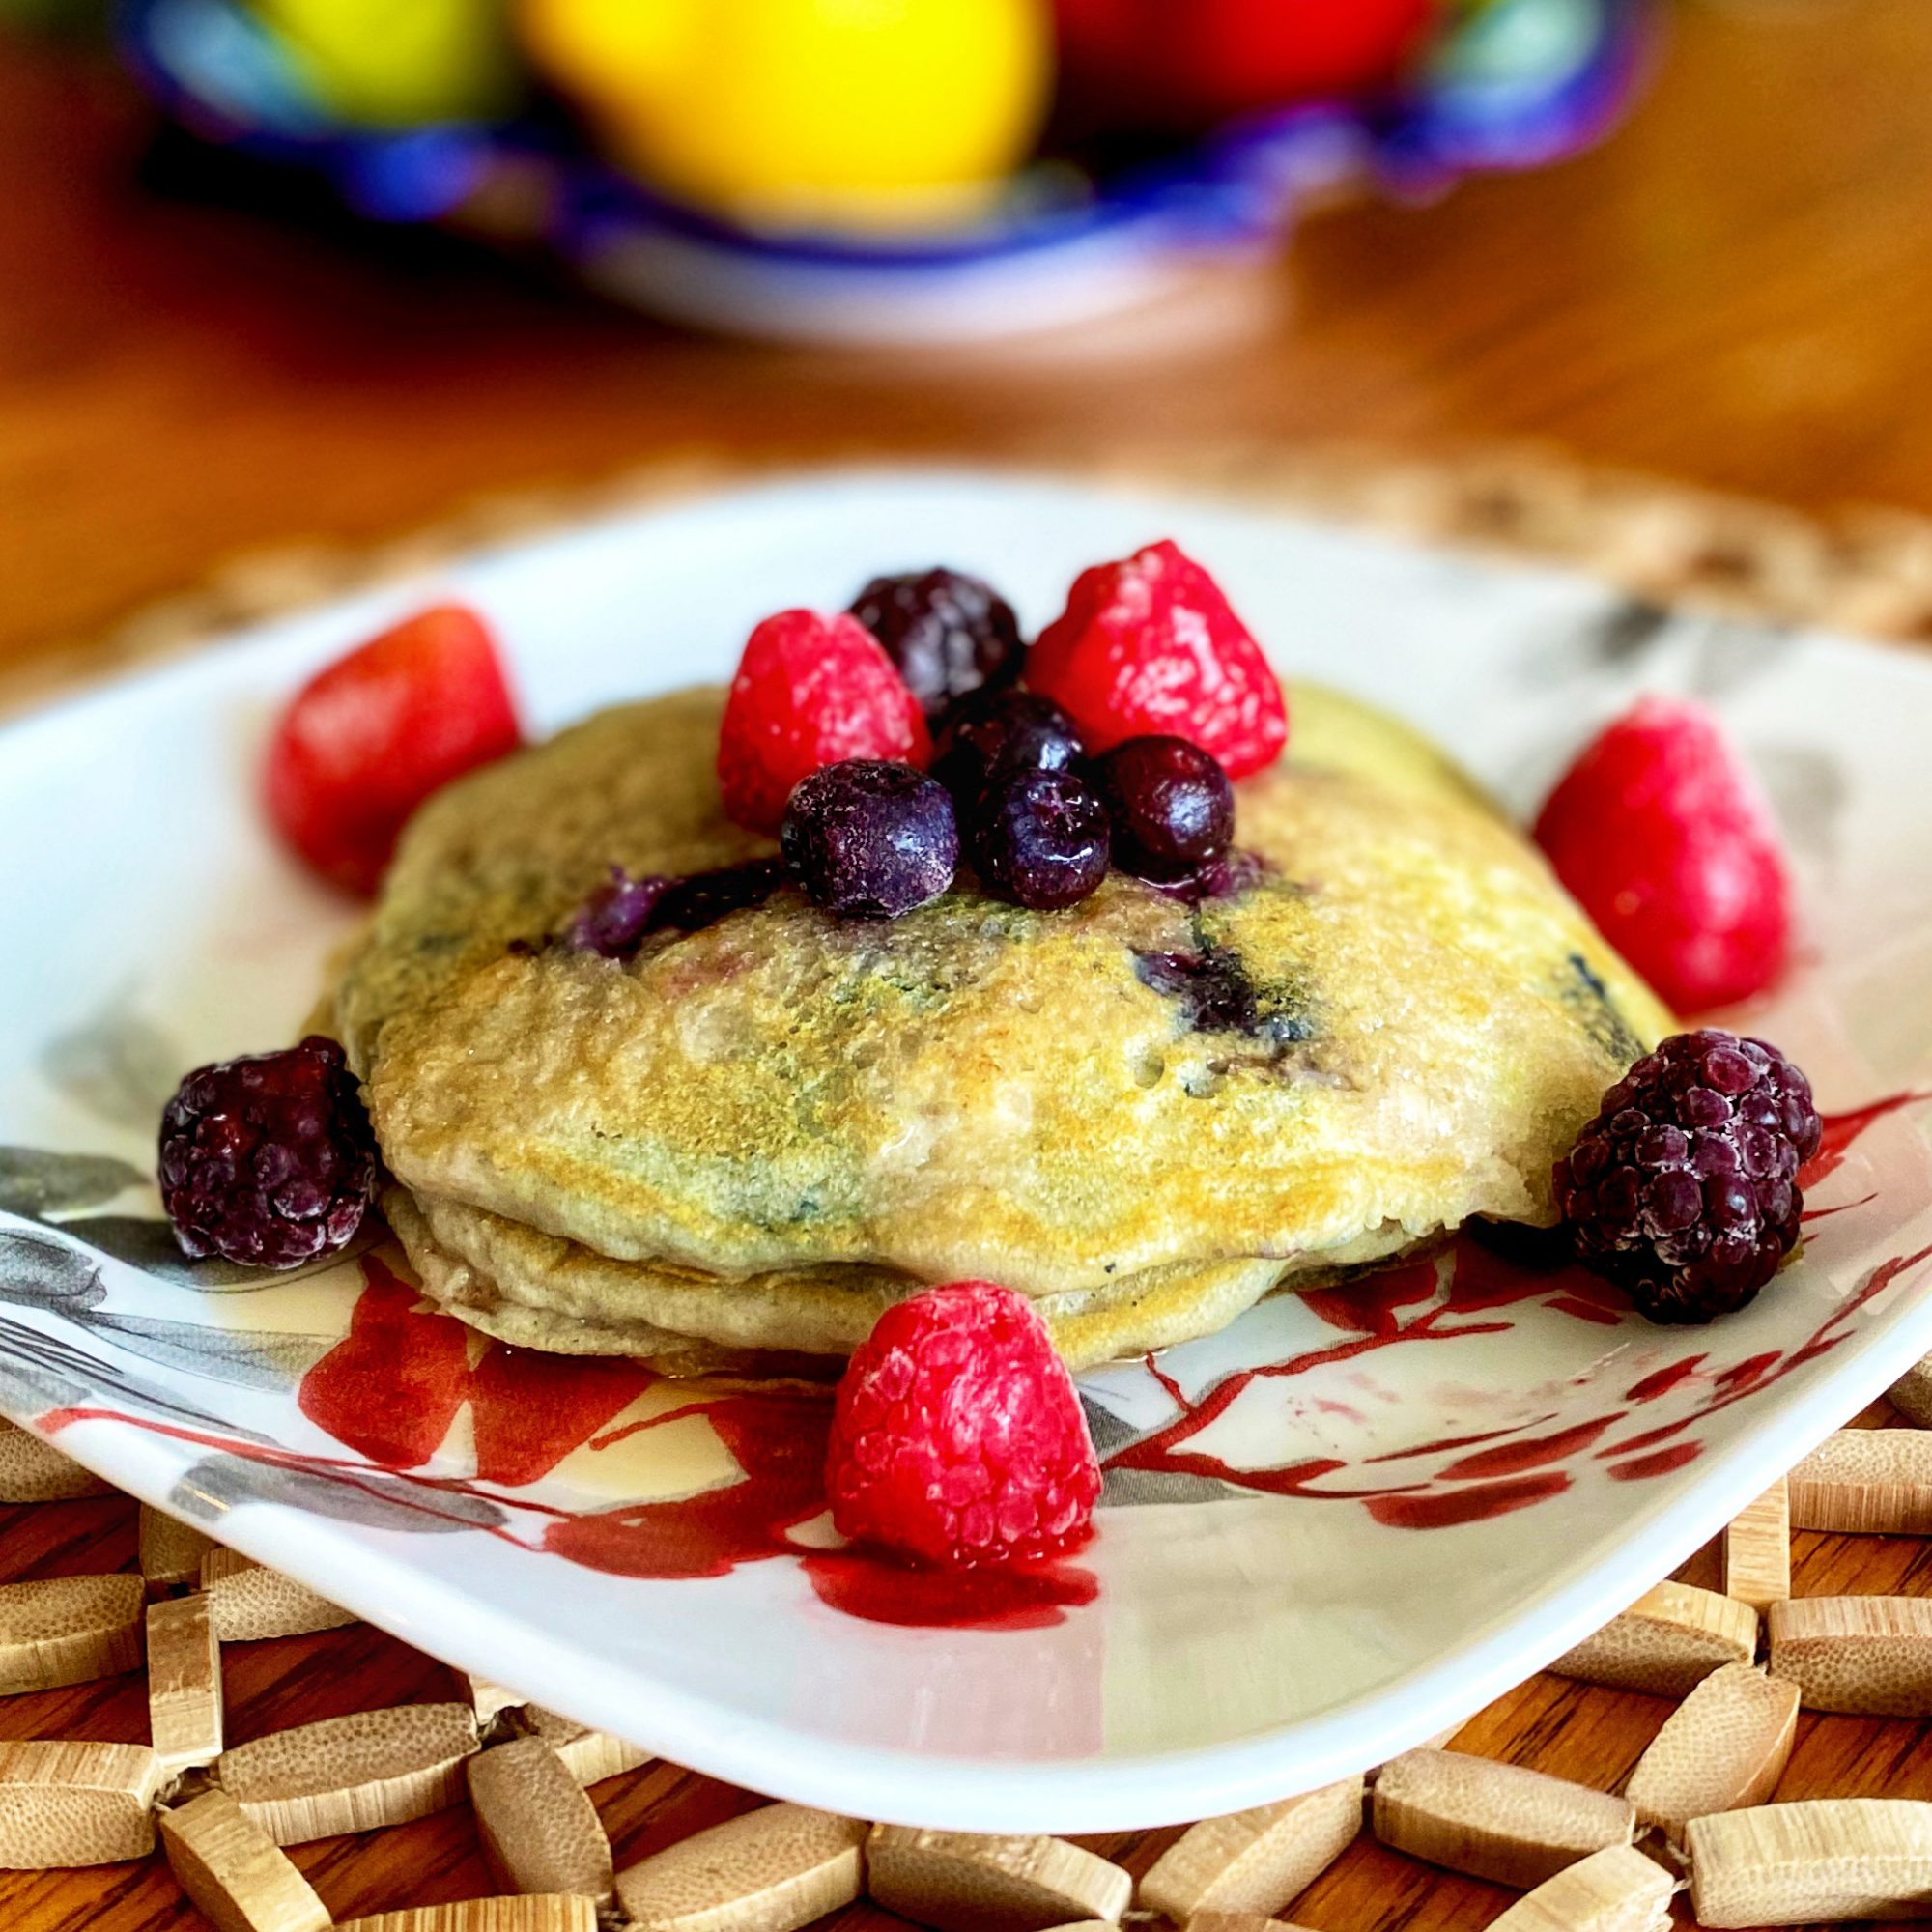 Vegan Blueberry Pancakes surrounded by berries